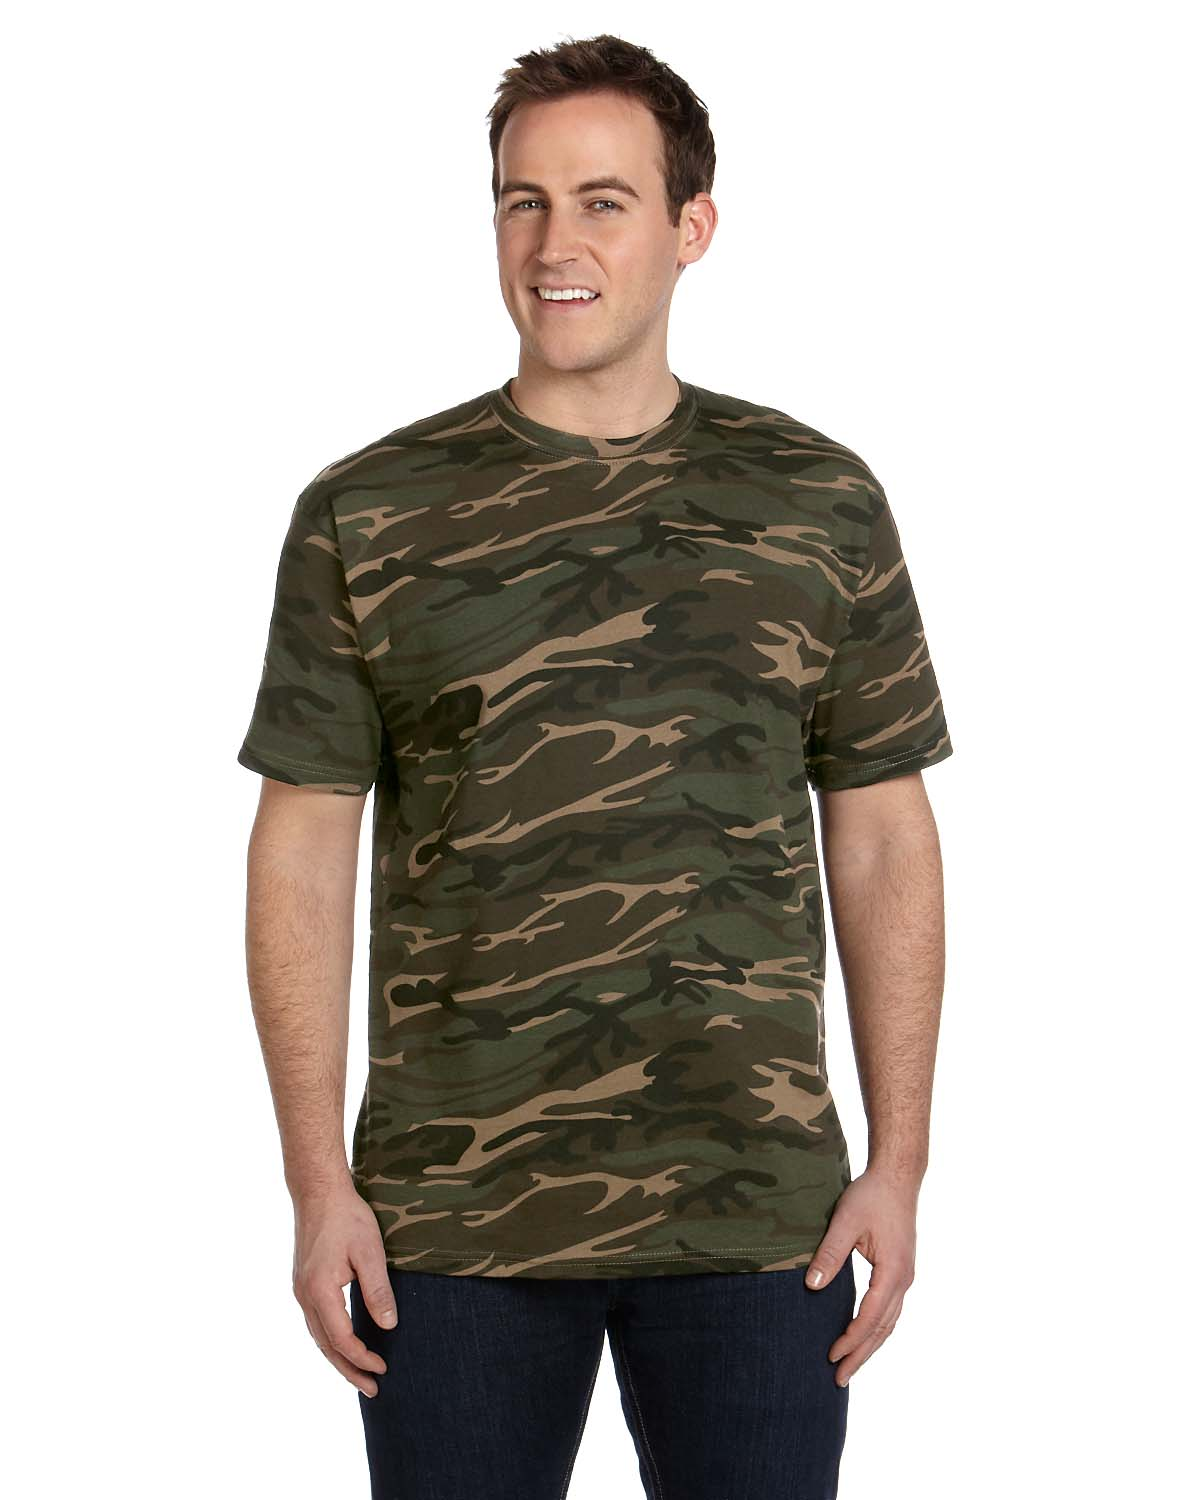 Anvil 939 camouflage heavyweight cotton t shirt shirtmax for Gildan camouflage t shirts